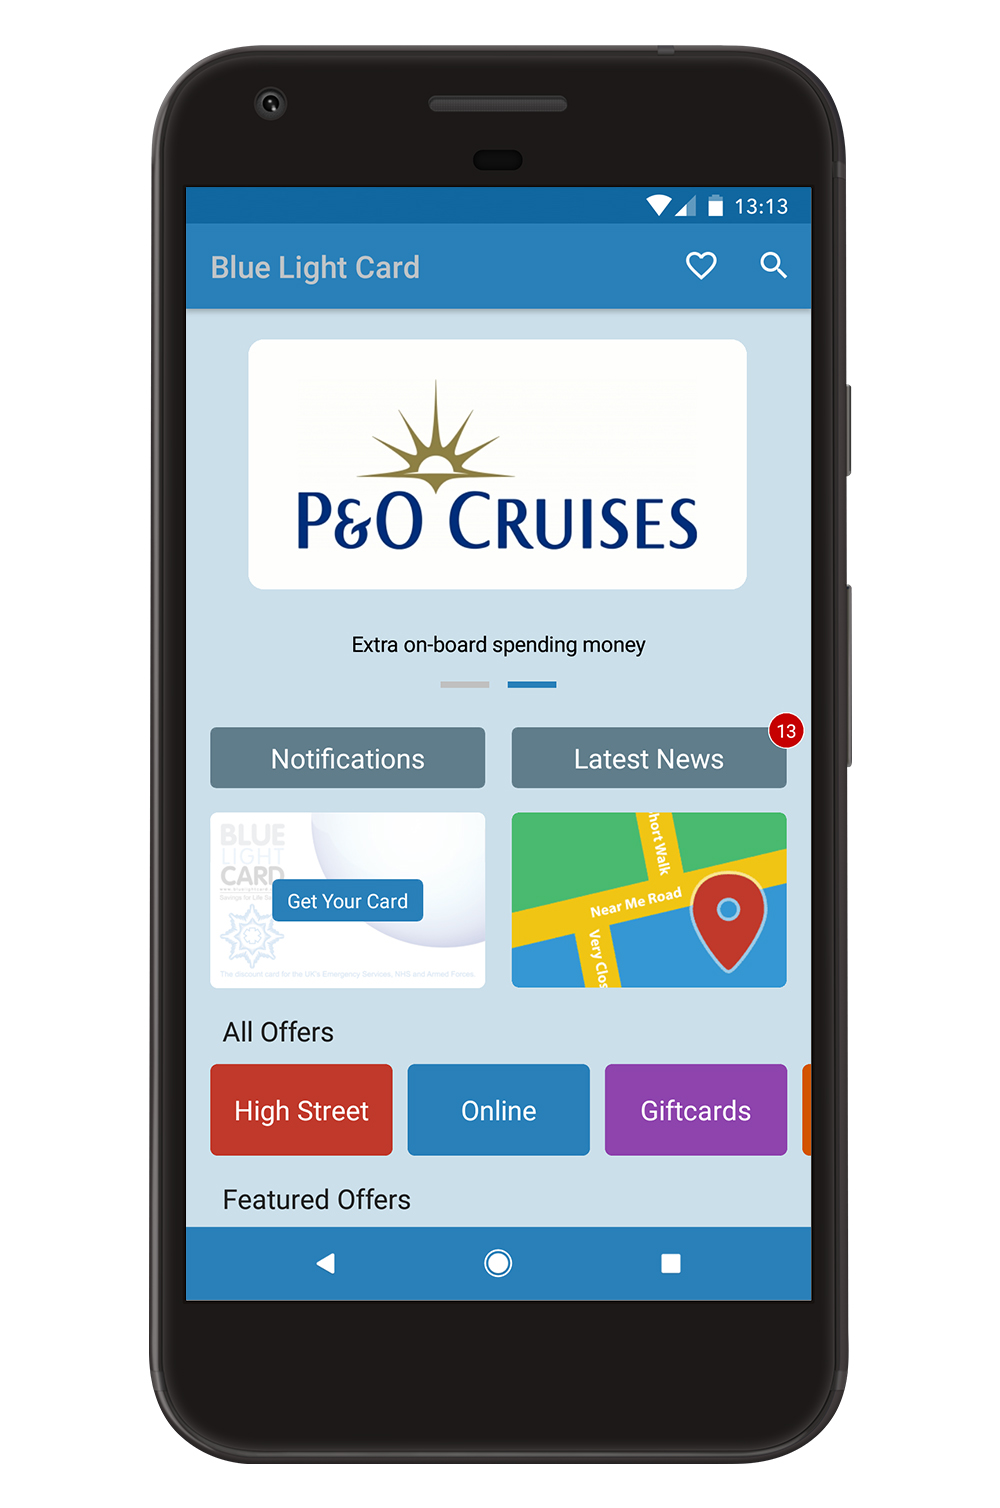 Blue Light Card Mobile Application